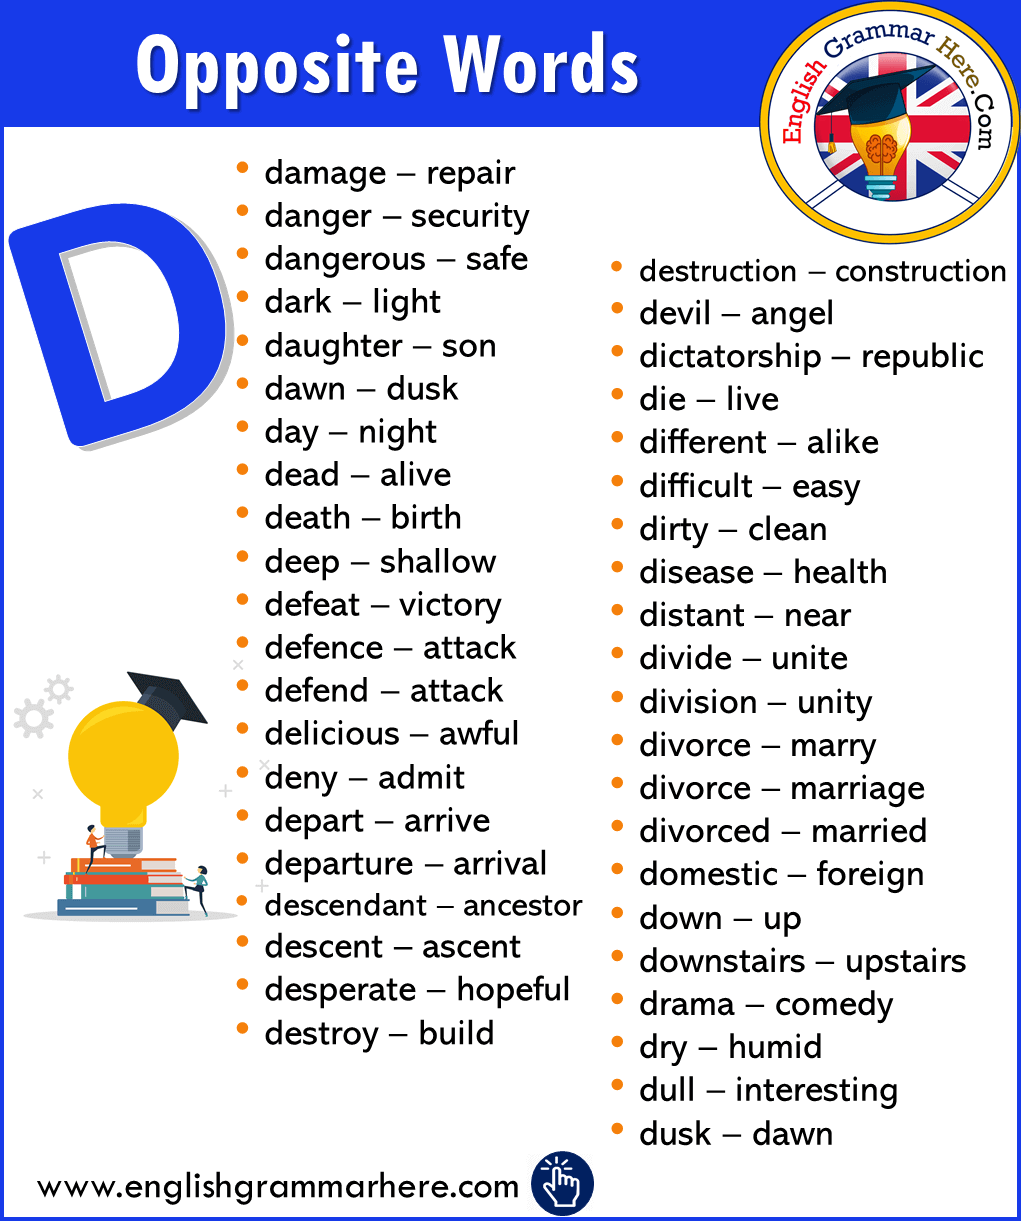 Alphabetical Opposite Word List – D